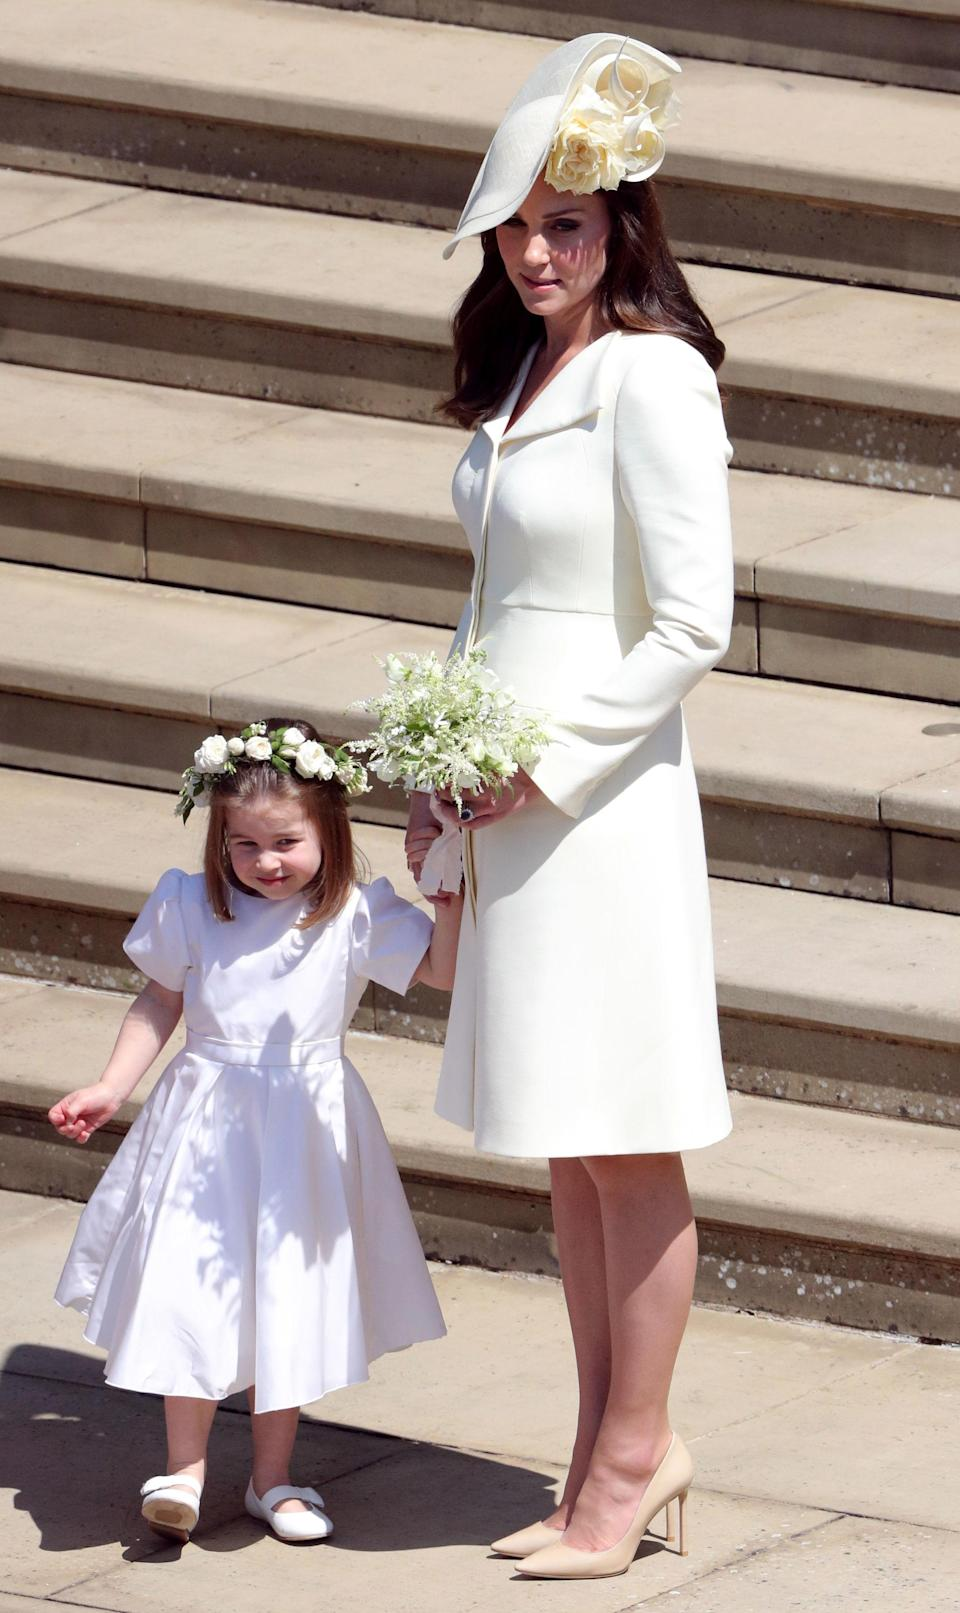 <p>For the Duke and Duchess of Sussex's royal nuptials, the Duchess of Cambridge wore a primrose yellow coat dress by Alexander McQueen. She first donned the look at Princess Charlotte's christening in white. <em>[Photo: Getty]</em> </p>